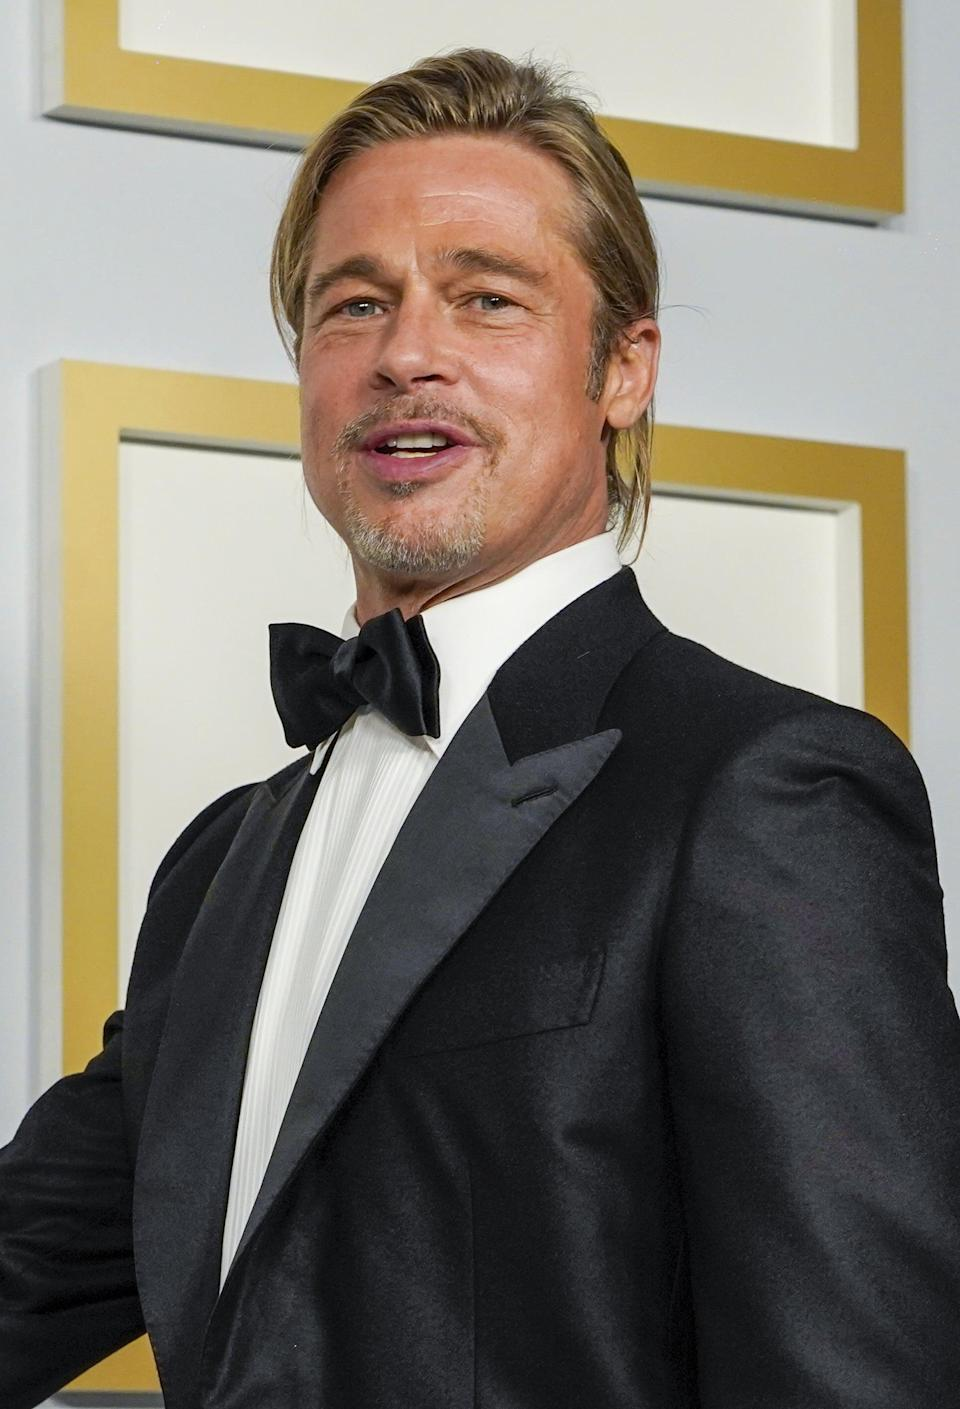 <p>Get a load of that lift at his roots. His hair doesn't look one bit matted down or greasy like mine usually does when I try to pull off a casual low bun. Bravo, Pitt - bravo. And those piecey, face-framing strands. He knows what he's doing.</p>